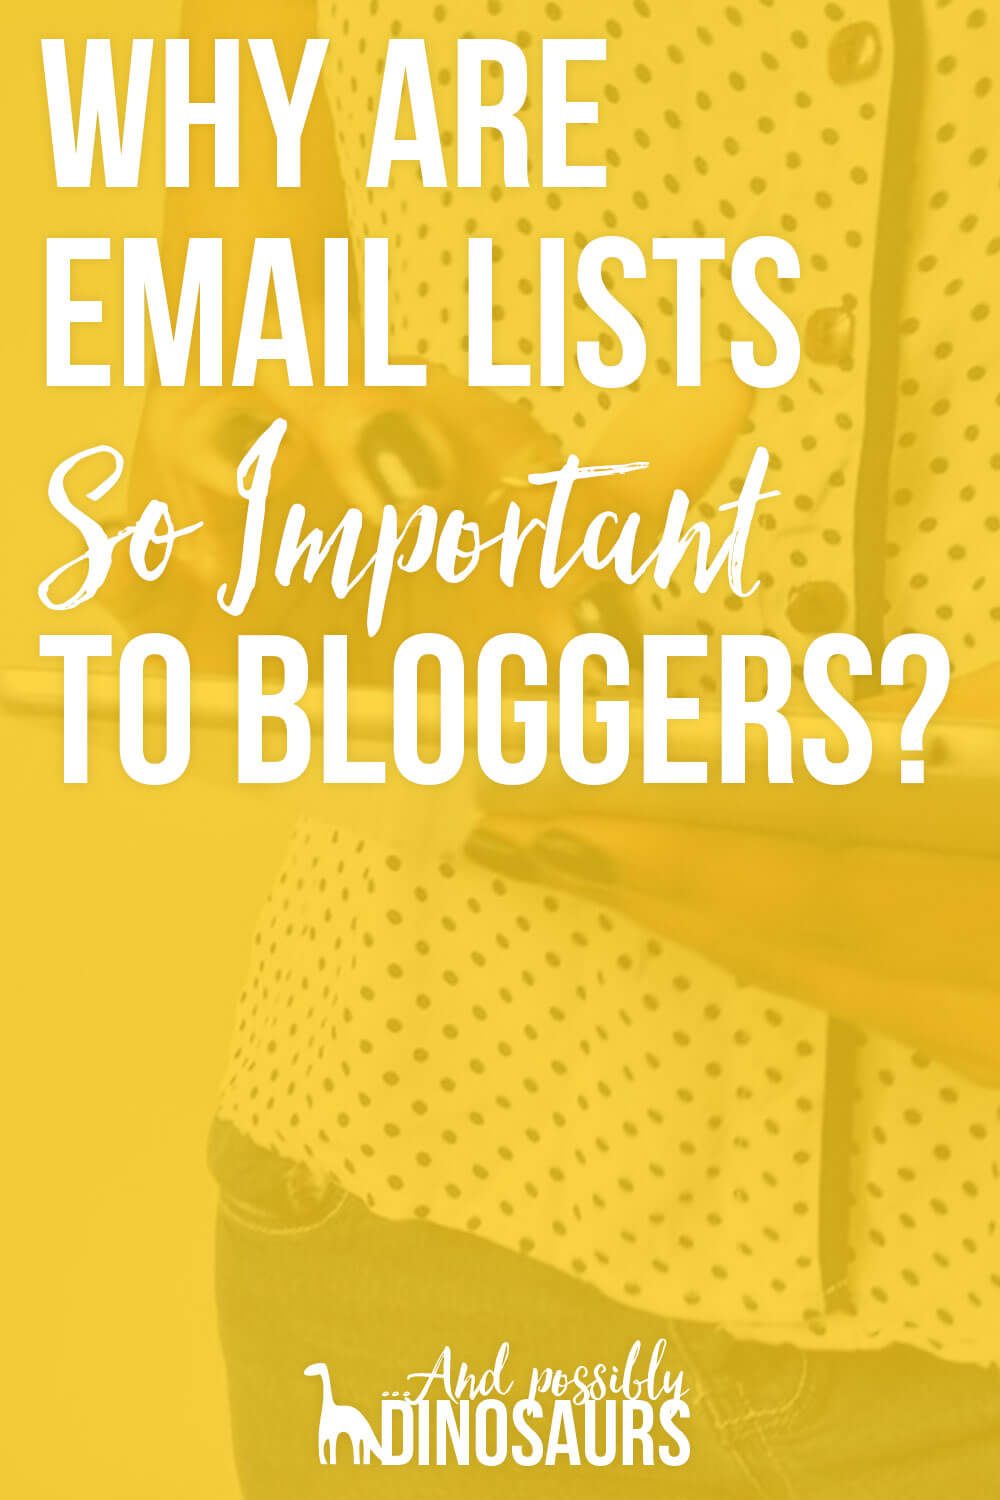 You've heard bloggers should have an email list. But why are they so important? (And what the heck are they?!) Click through for my post where I explain what email lists are and why the heck they're so important to bloggers!